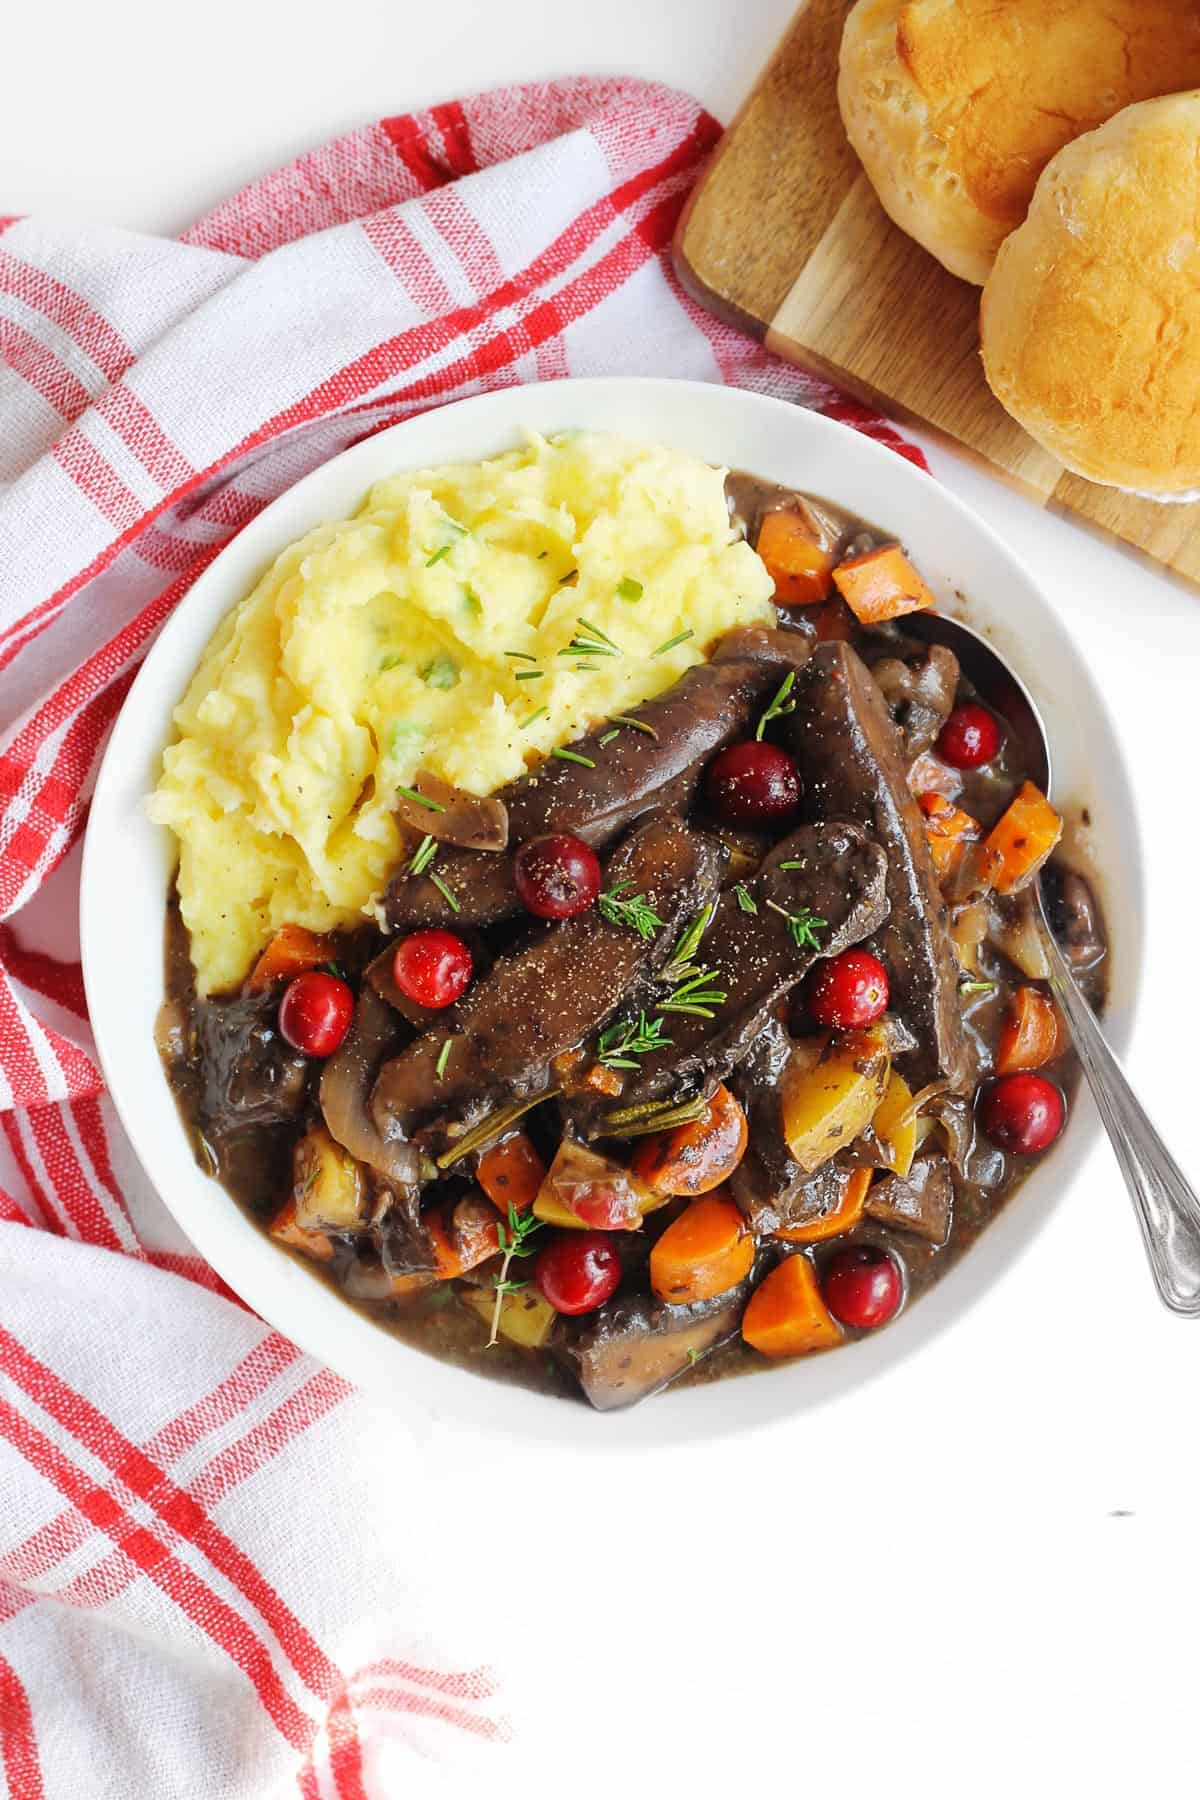 Cranberry portobello pot roast with mashed potatoes